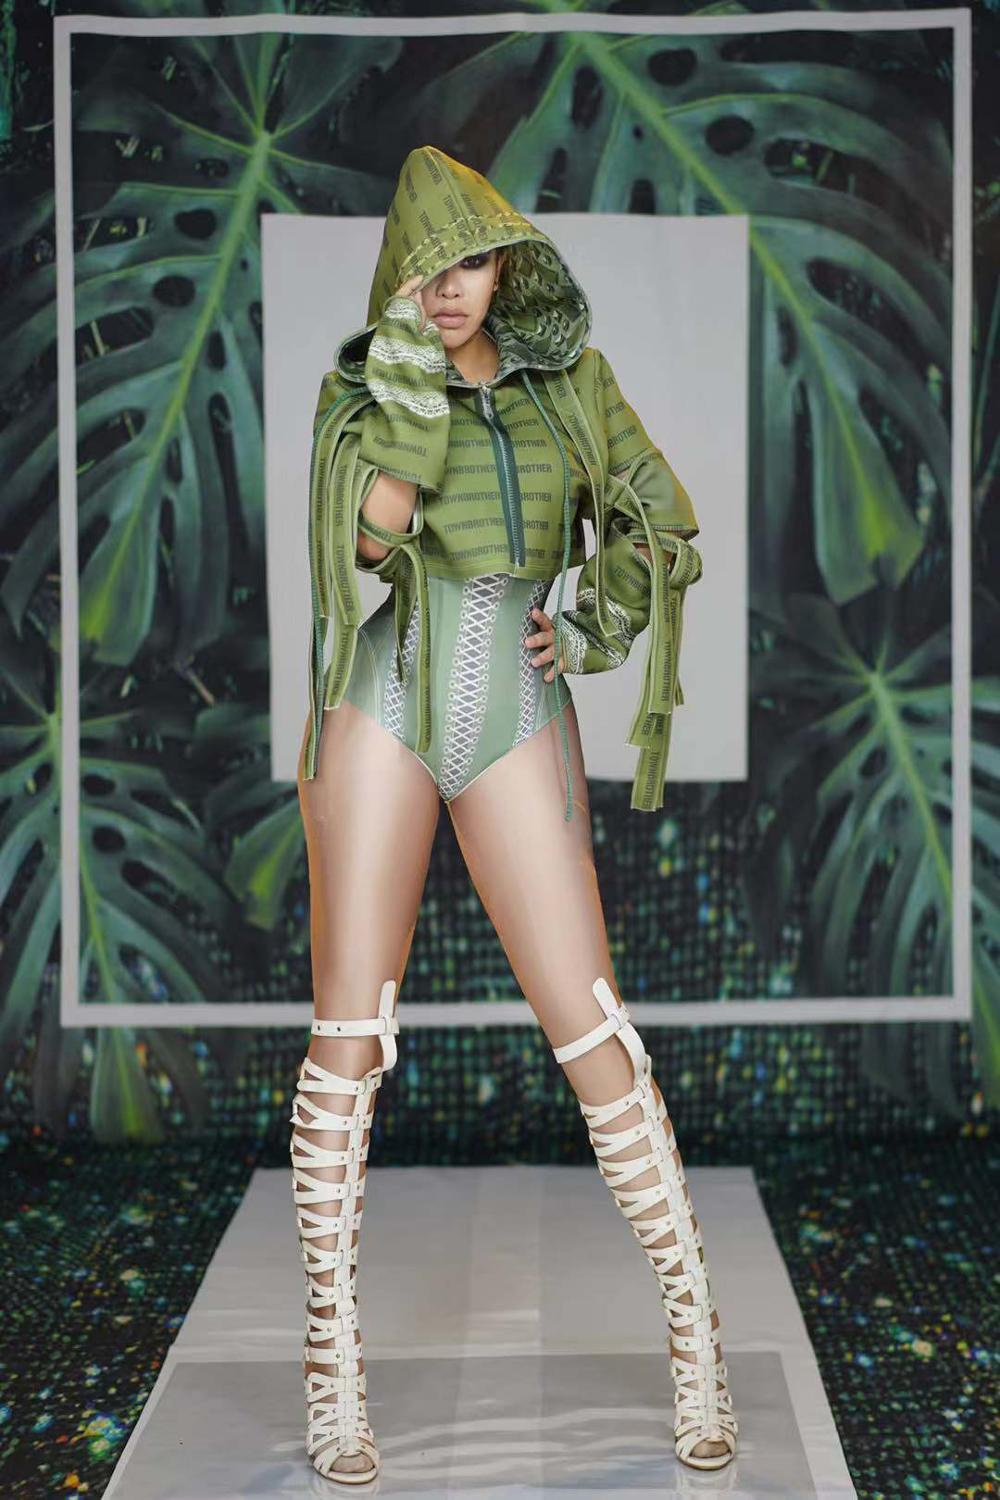 Club Party Women <font><b>Cosplay</b></font> Costume <font><b>Army</b></font> Green Bodysuit Tops 2-Pieces Set <font><b>Sexy</b></font> DJ Jazz Hip Hop Dance Outfit Role Performance Wears image